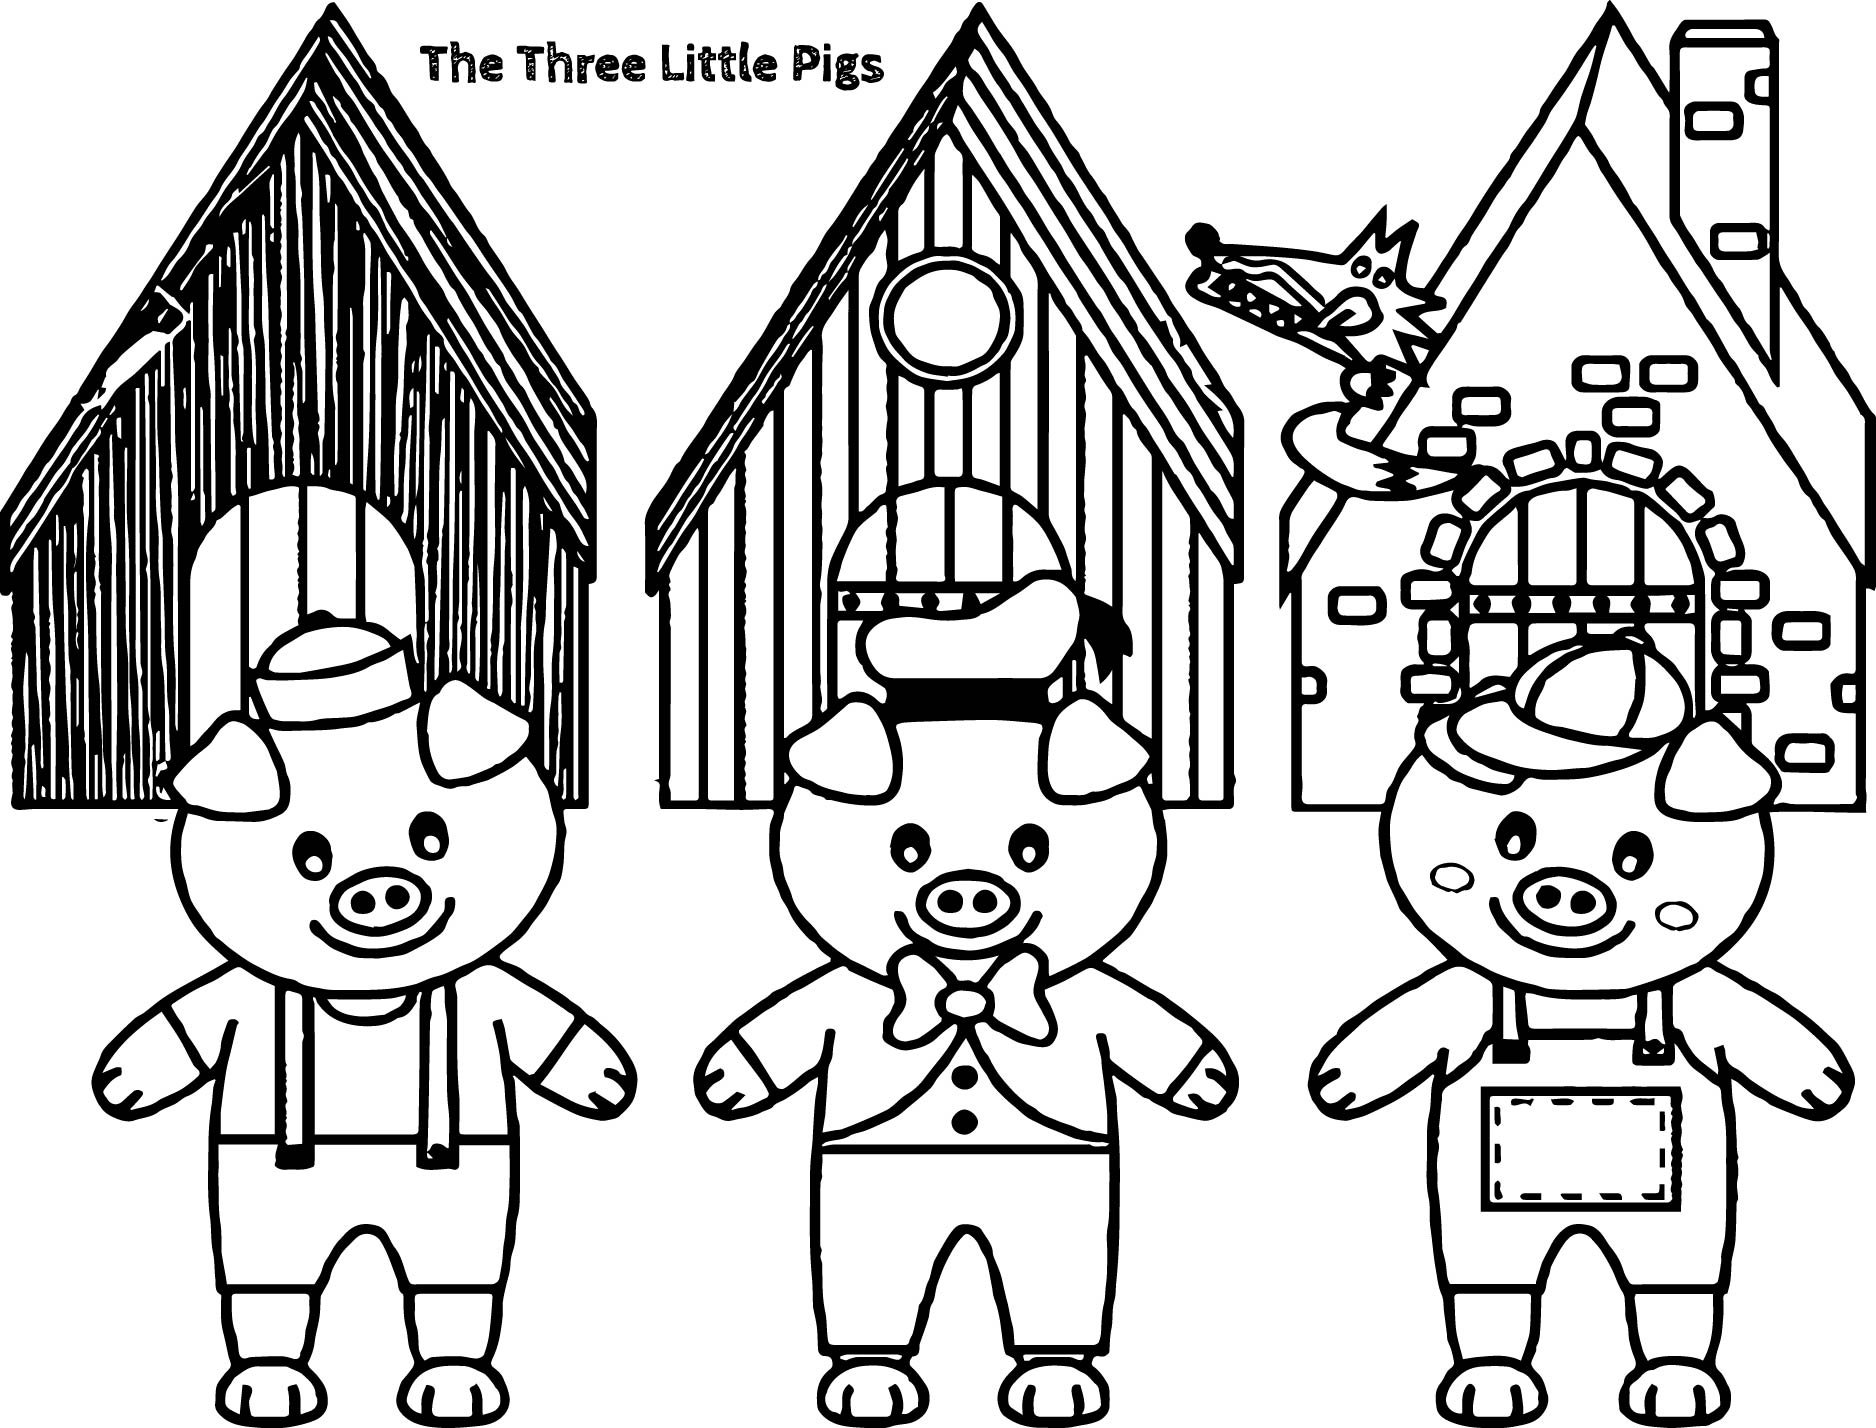 Coloring pages 3 little pigs - Three little pigs and the big bad wolf children story coloring page